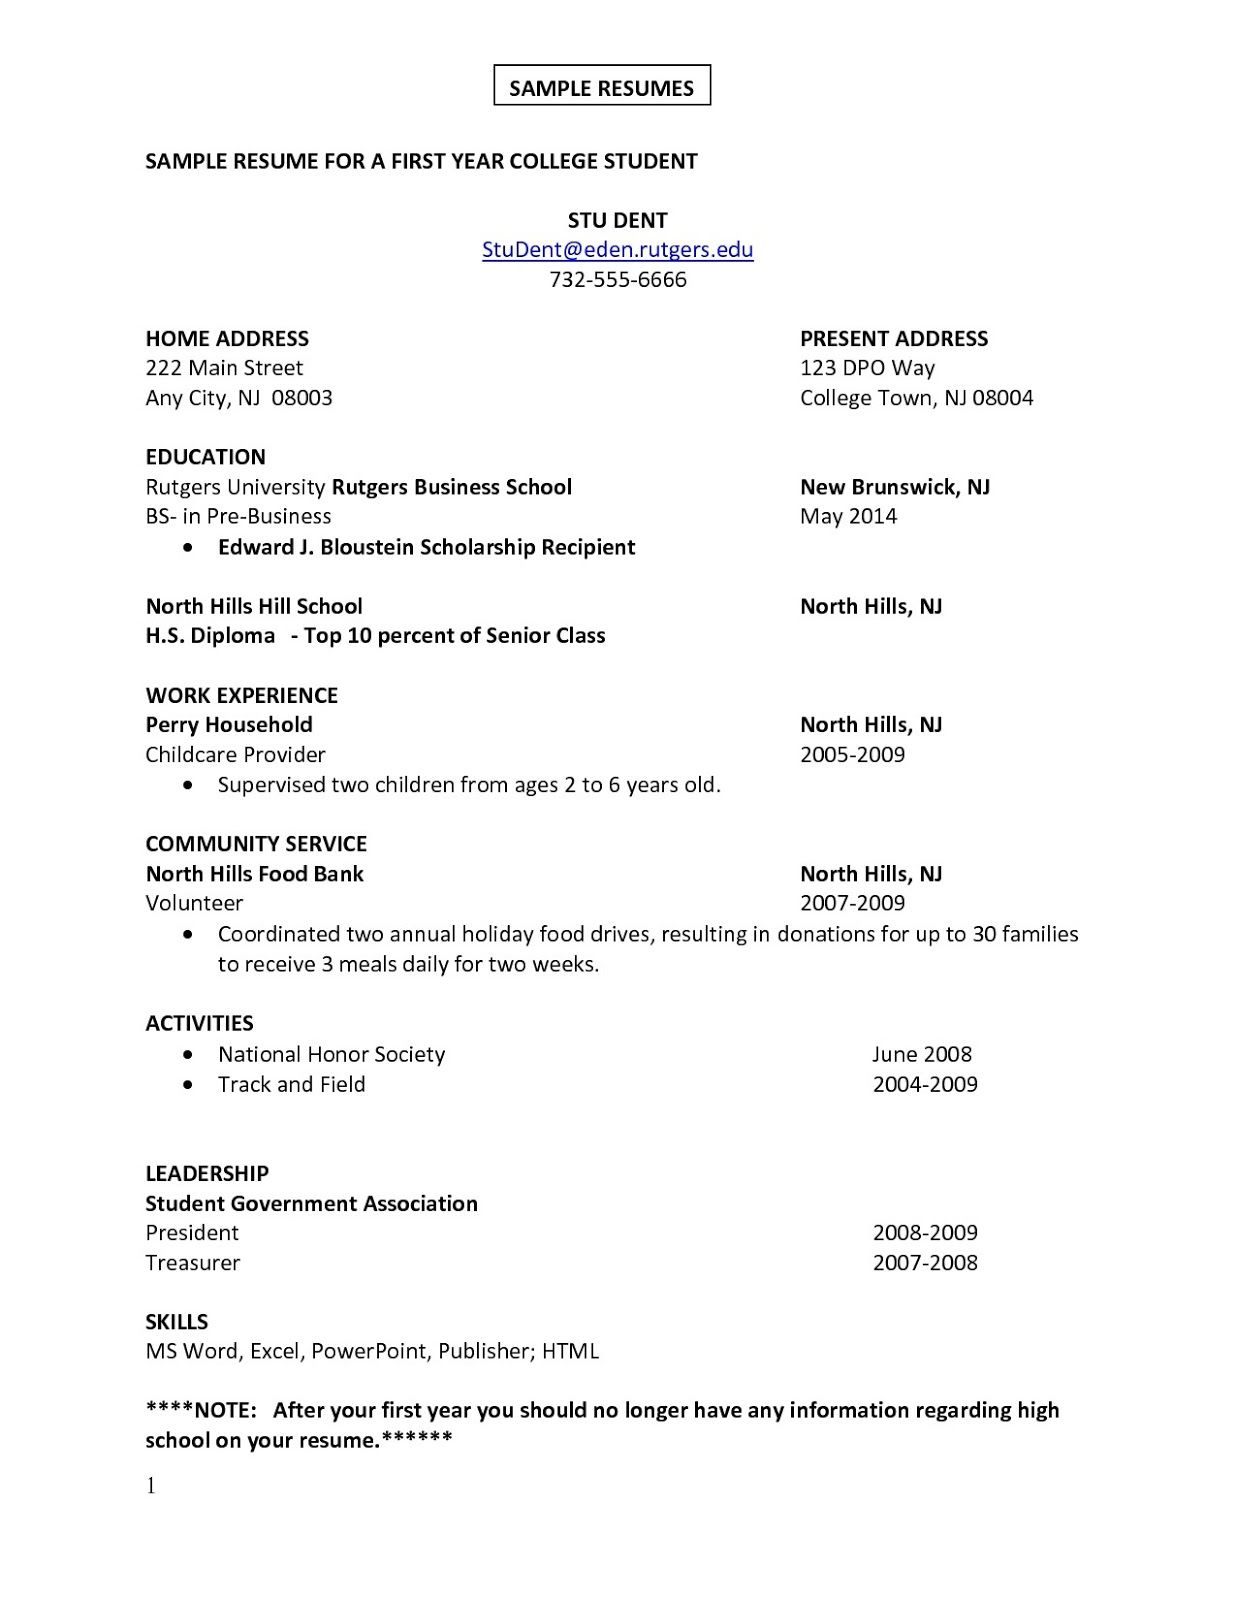 resume Resume Sample For College Student first job sample resume resumes college student resume